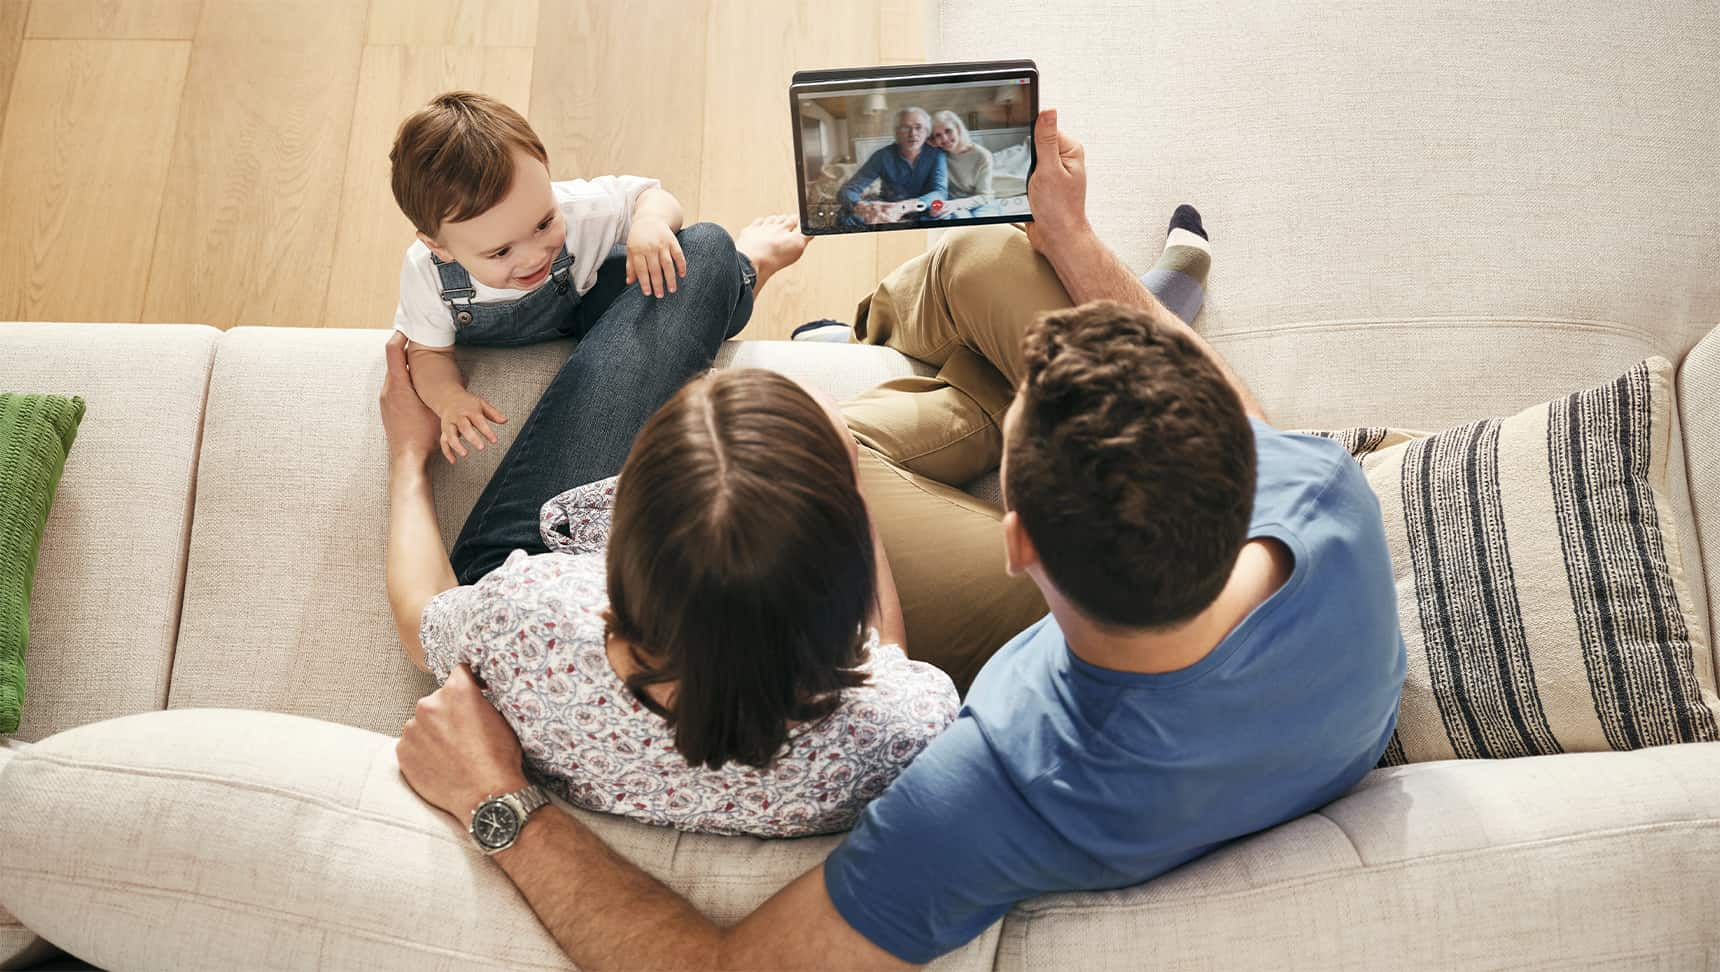 Connect to Telstra internet and enjoy online entertainment with your family. New customers receive a Telstra Smart Modem.